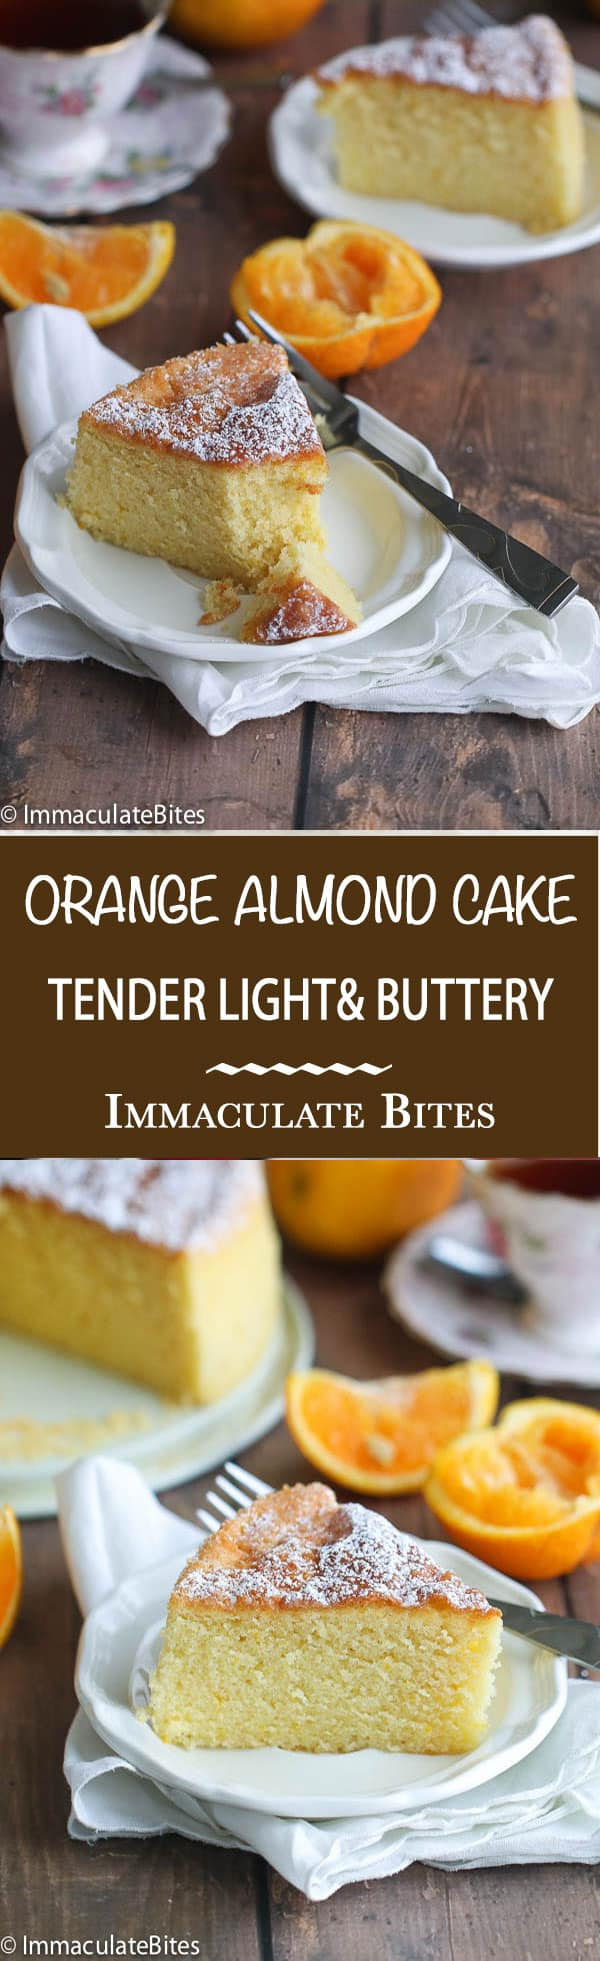 Orange Almond Butter Cake- A tender, buttery melt in your mouth cake. Add this to your cake repertoire – the taste is irresistible.